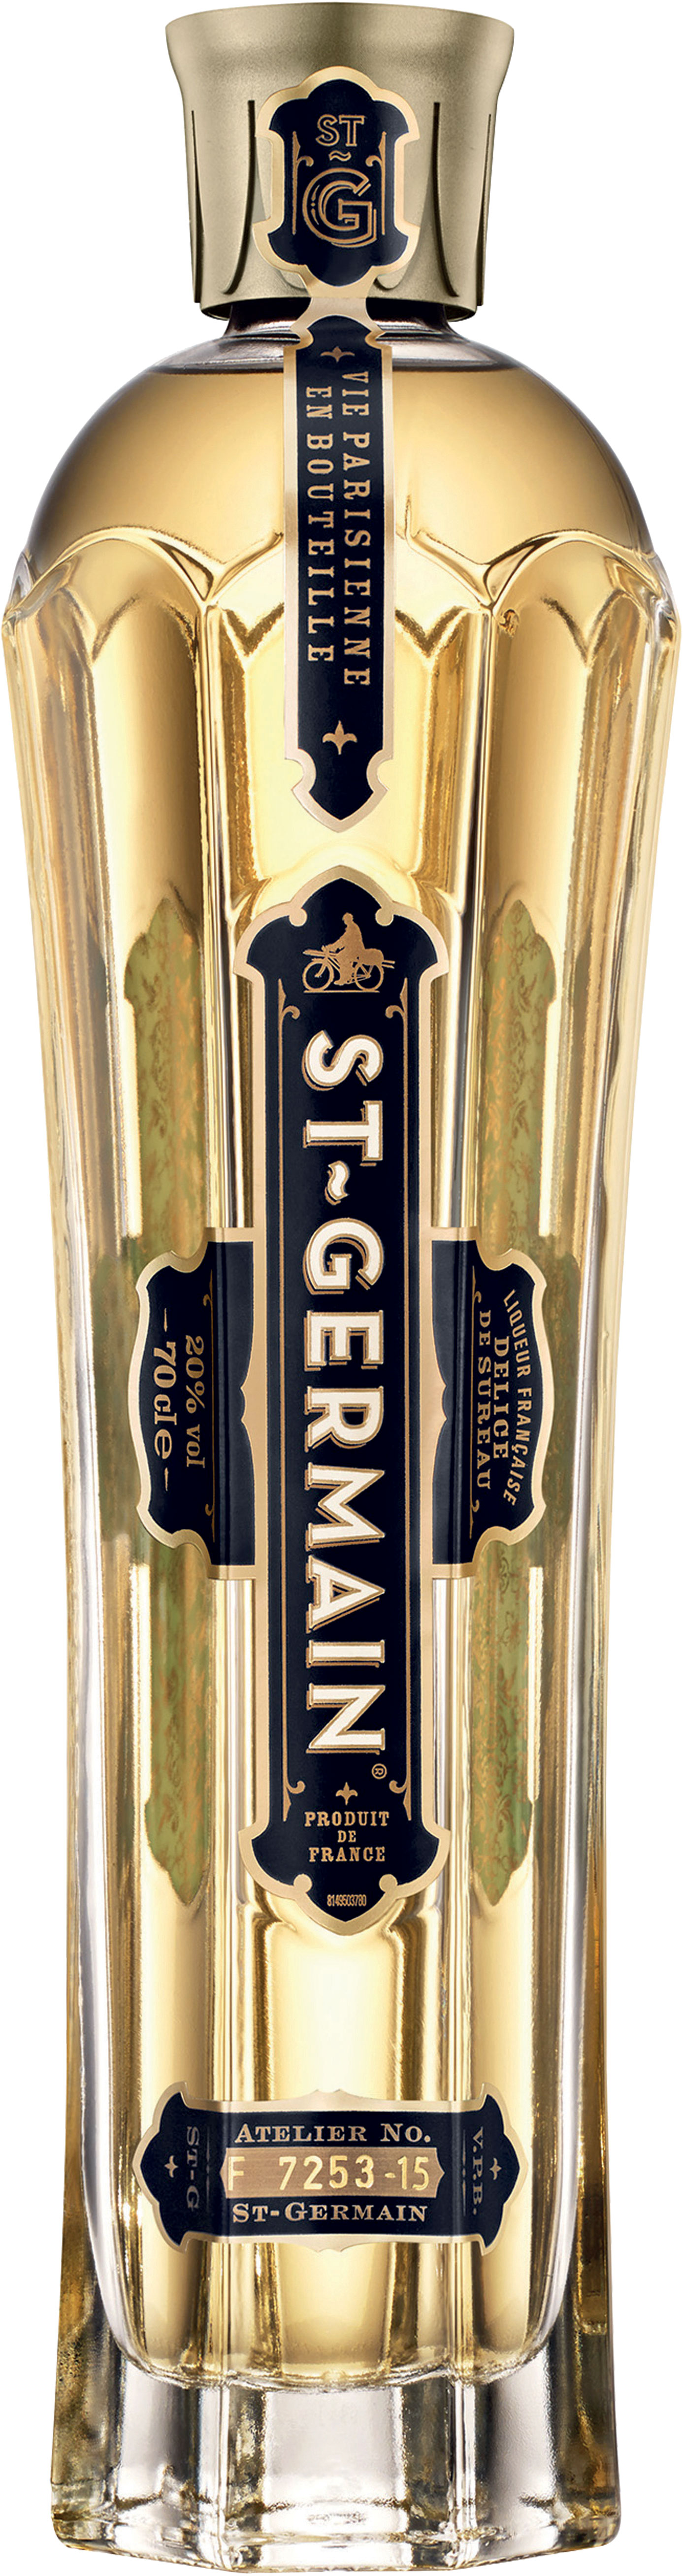 St Germain - Elderflower Liqueur 70cl Bottle